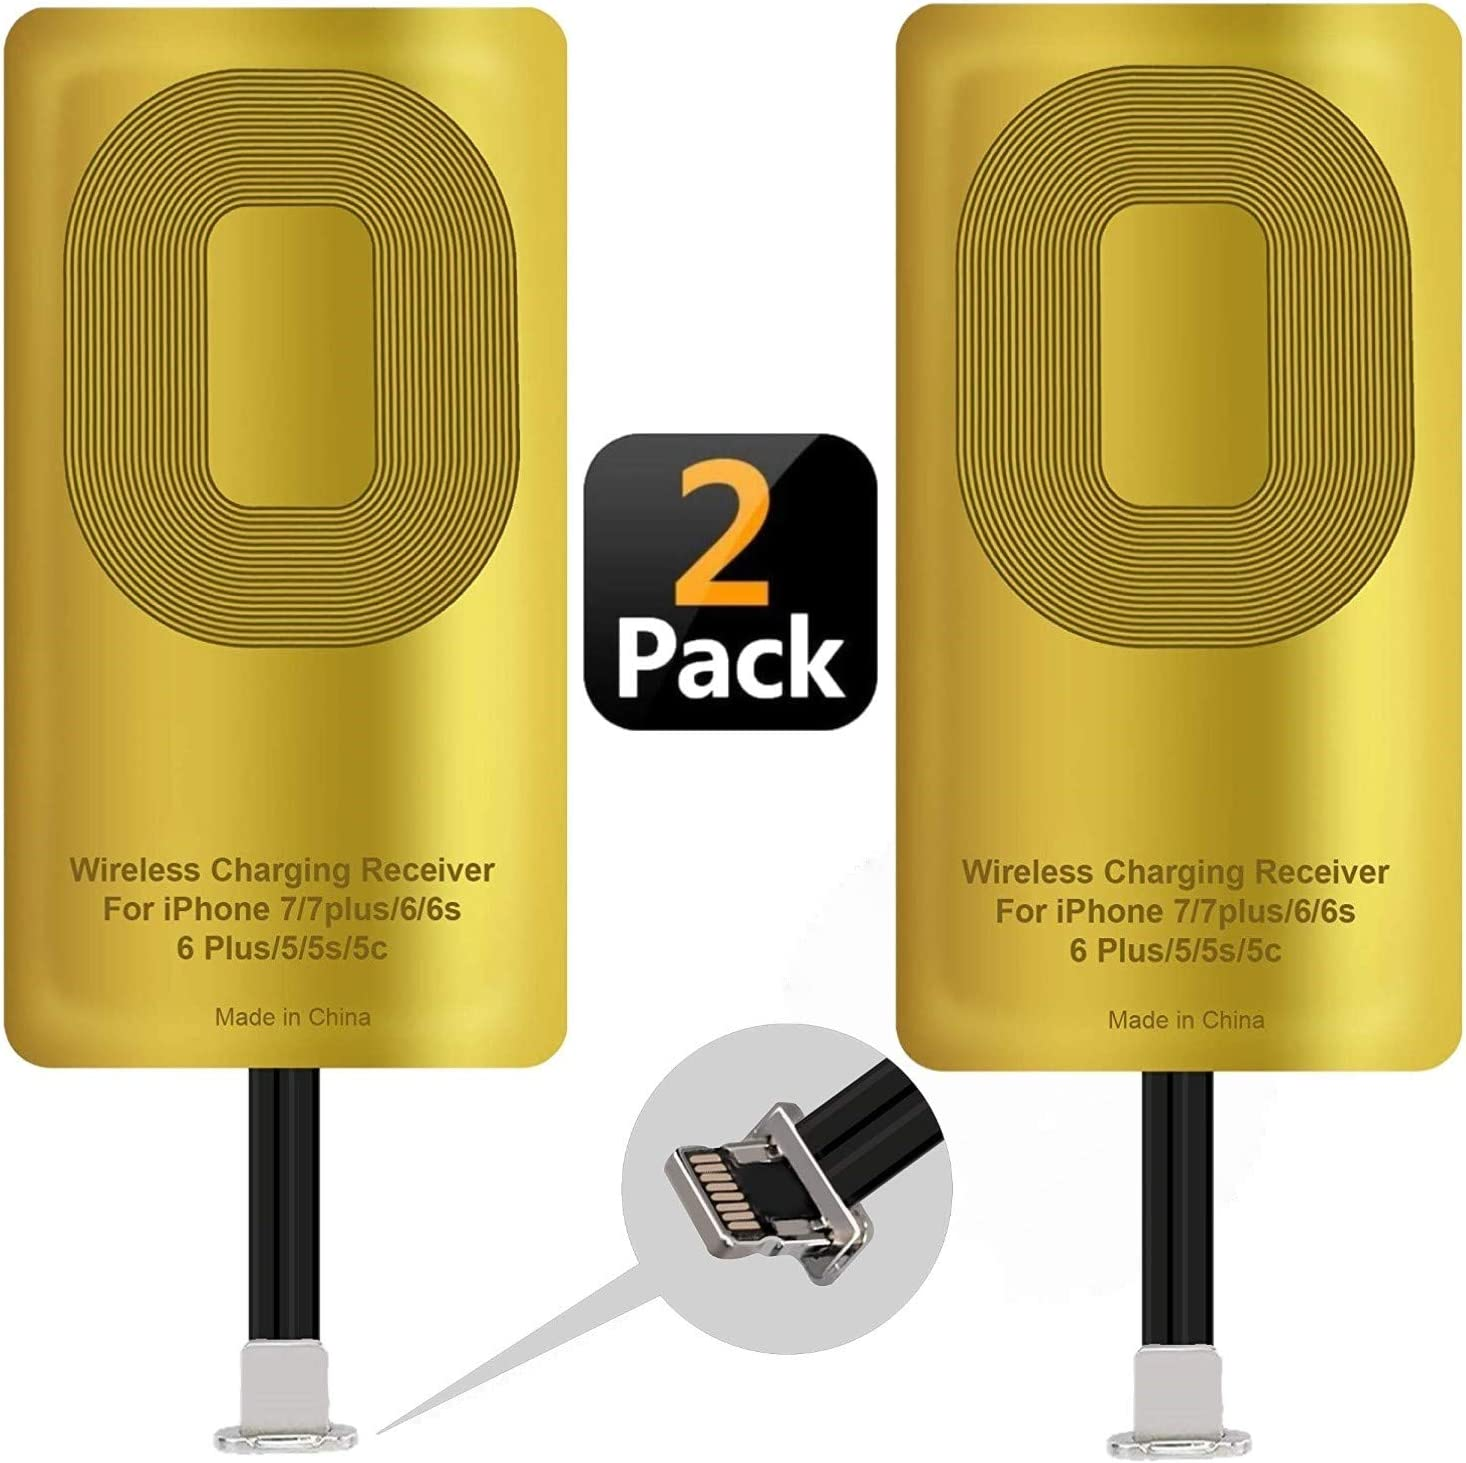 2 Pcs Fast QI Receiver Ultra-Thin Wireless Charging Receiver Adapter Patch for iPhone 7/7 Plus/6/6 Plus/6s/6s Plus/5/5s/5c 5w 1000mAh Compatible All Wireless Charger(2 pcs)